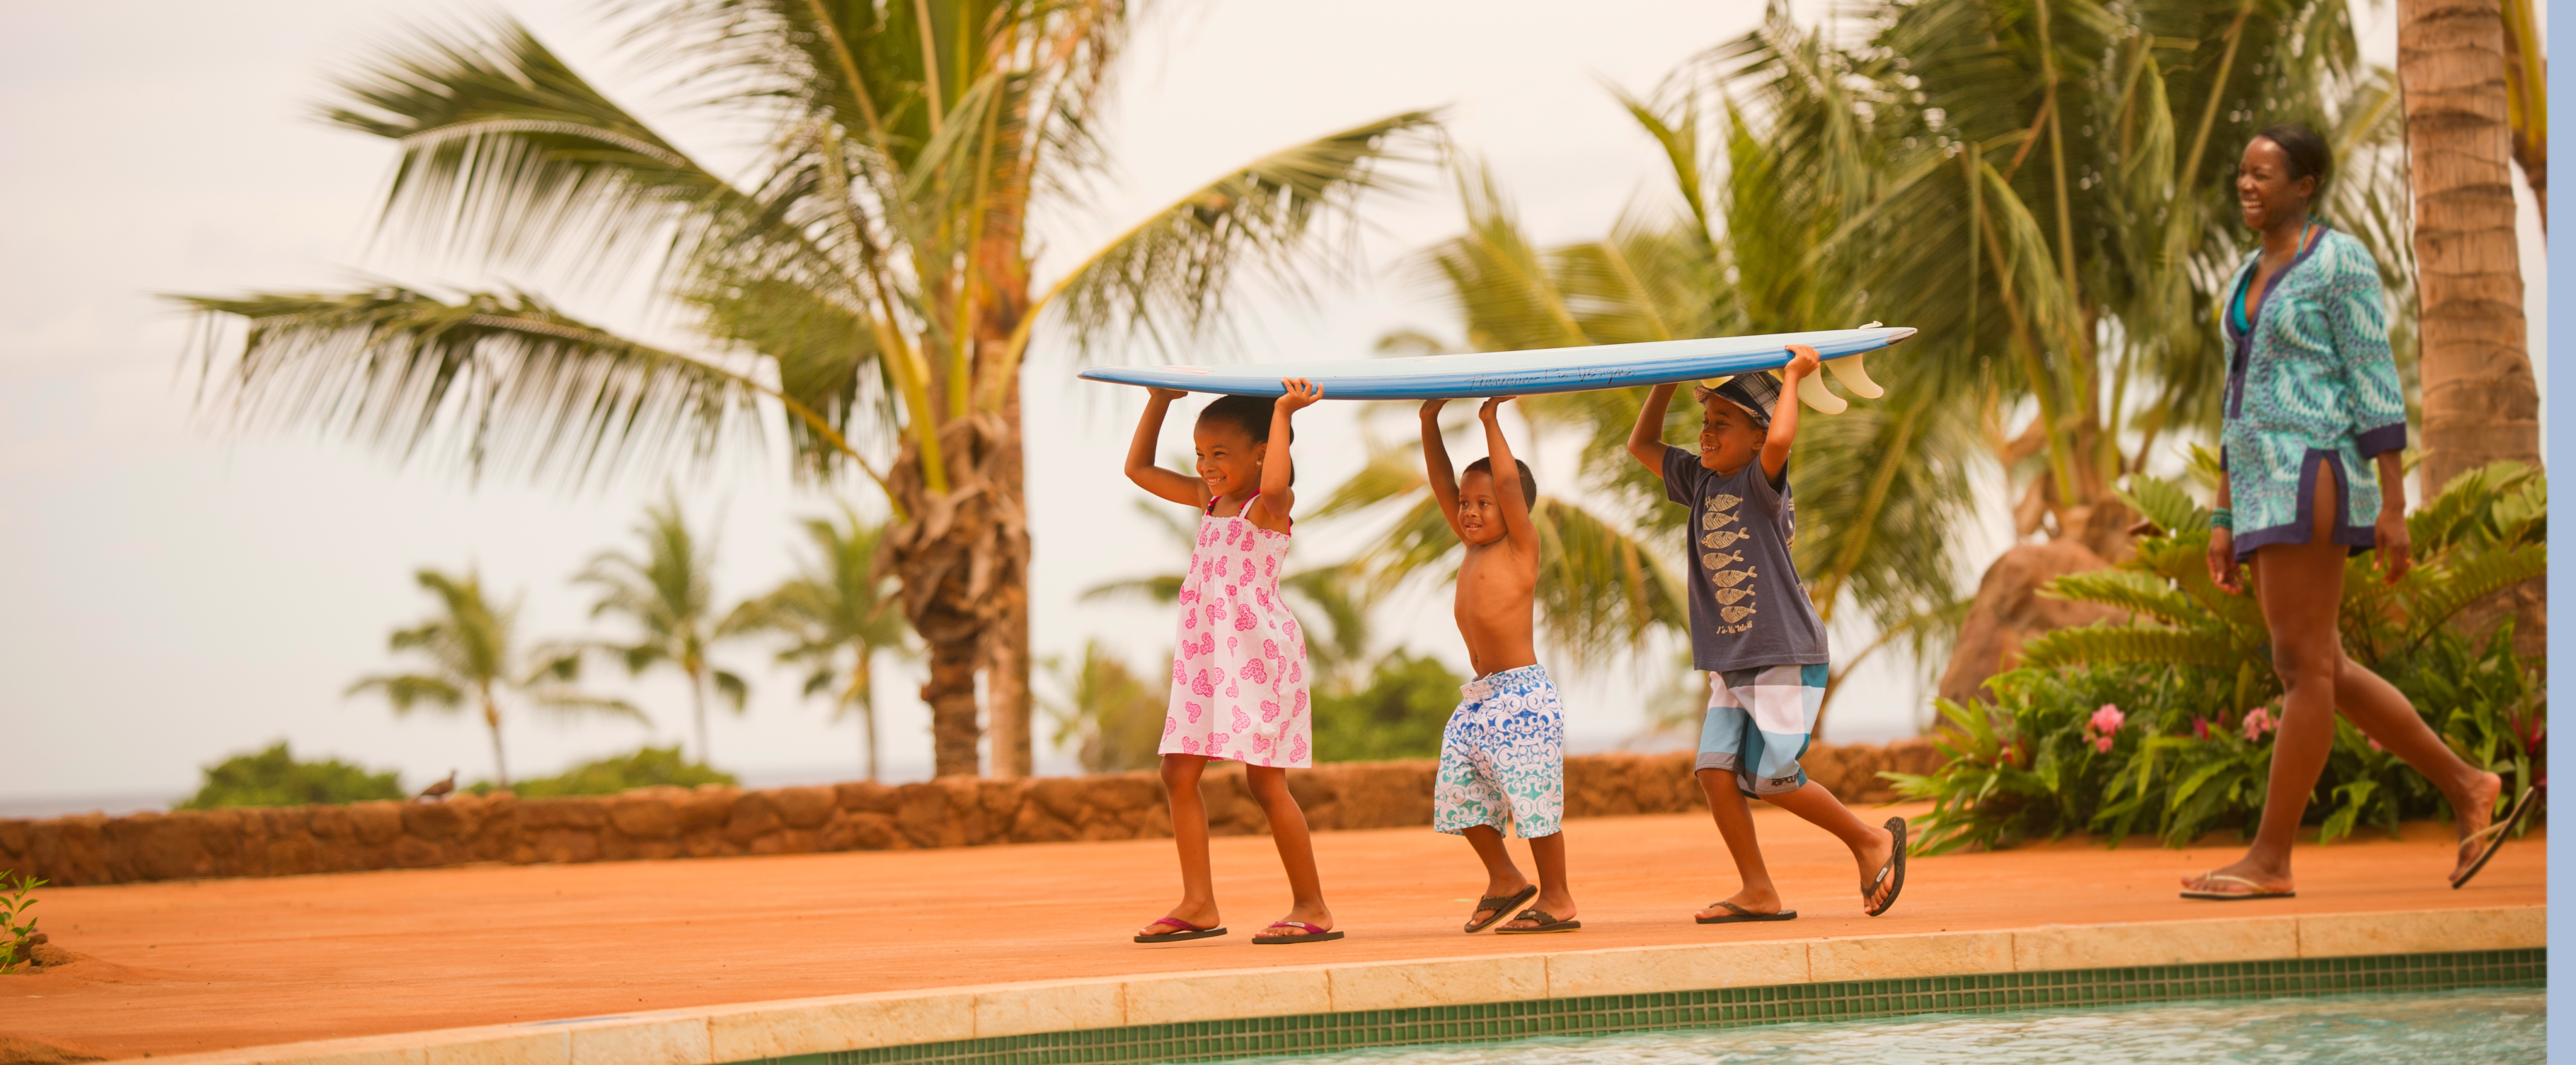 Children carry a surfboard by the Aulani pool area